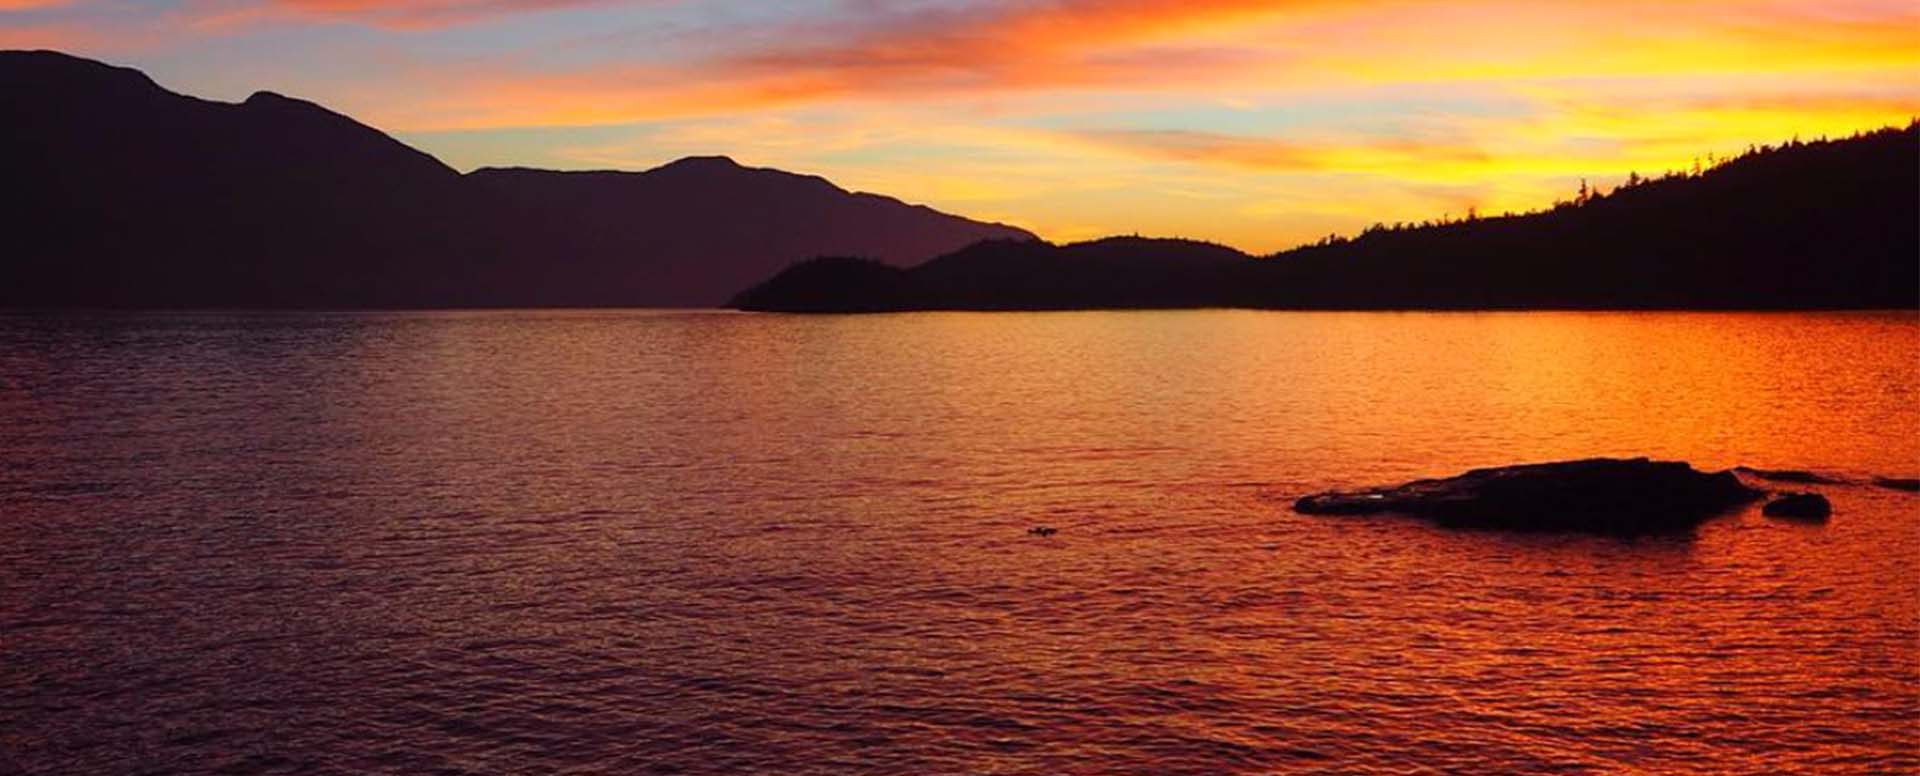 Stunning sunset Johnstone Strait